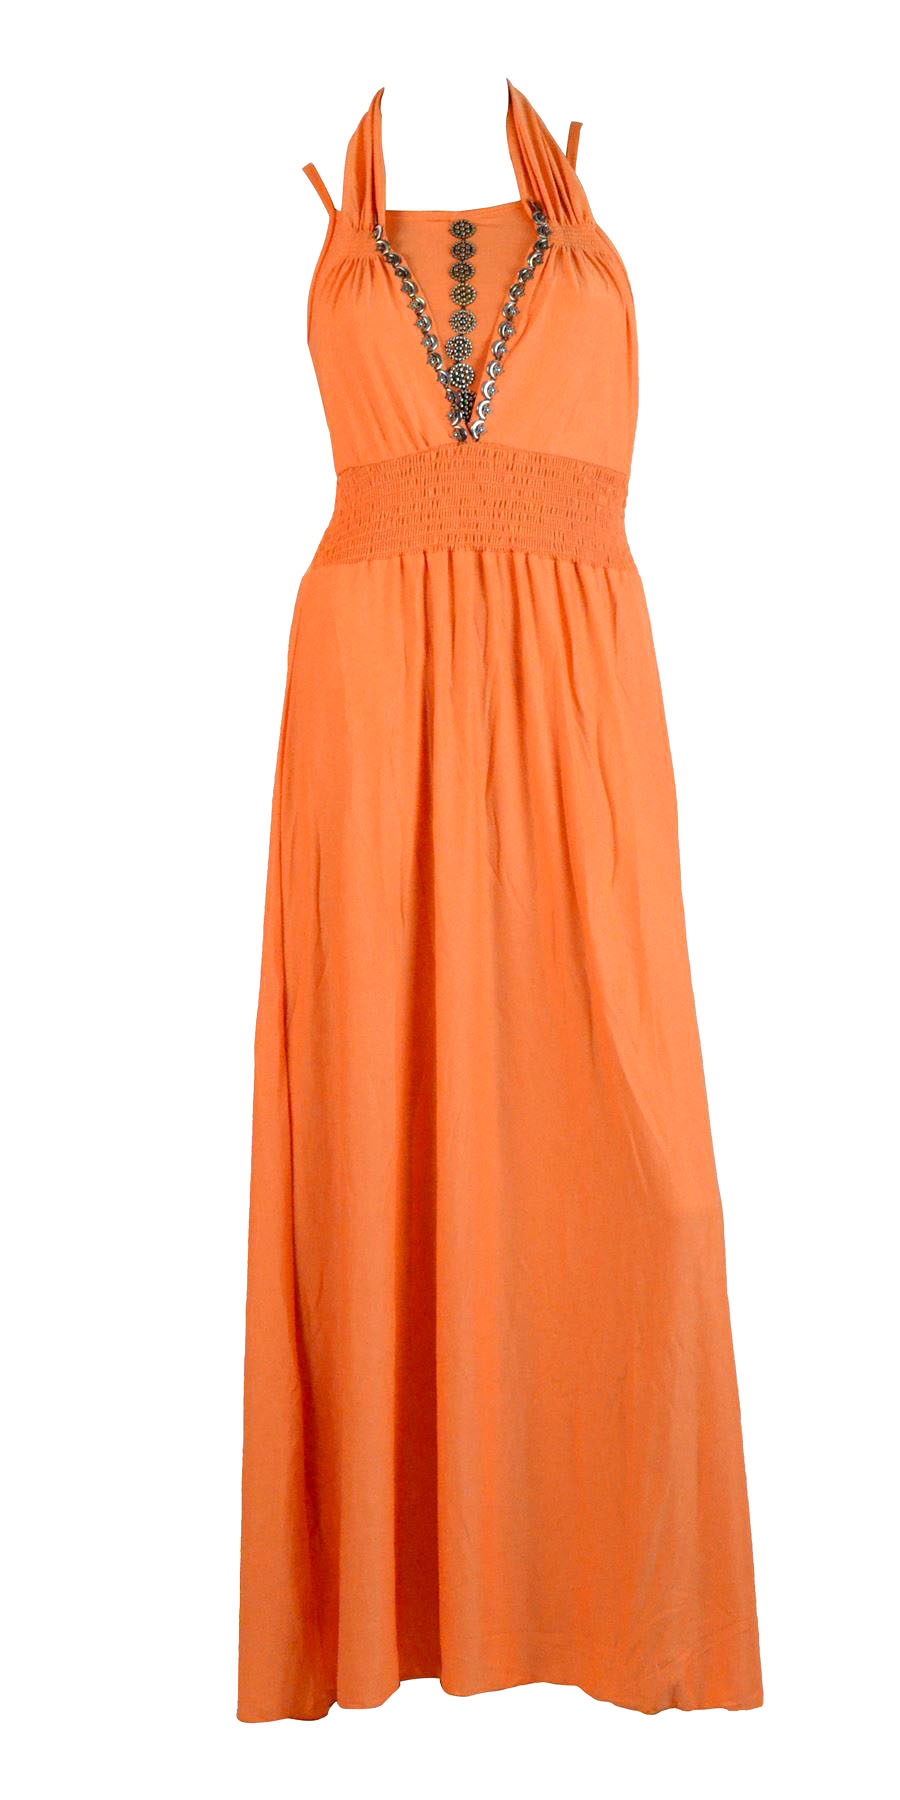 Belle Donne- Womenâ€TMs Maxi Dress Sleeveless Halter Top Solid Colors Long Dress - Orange